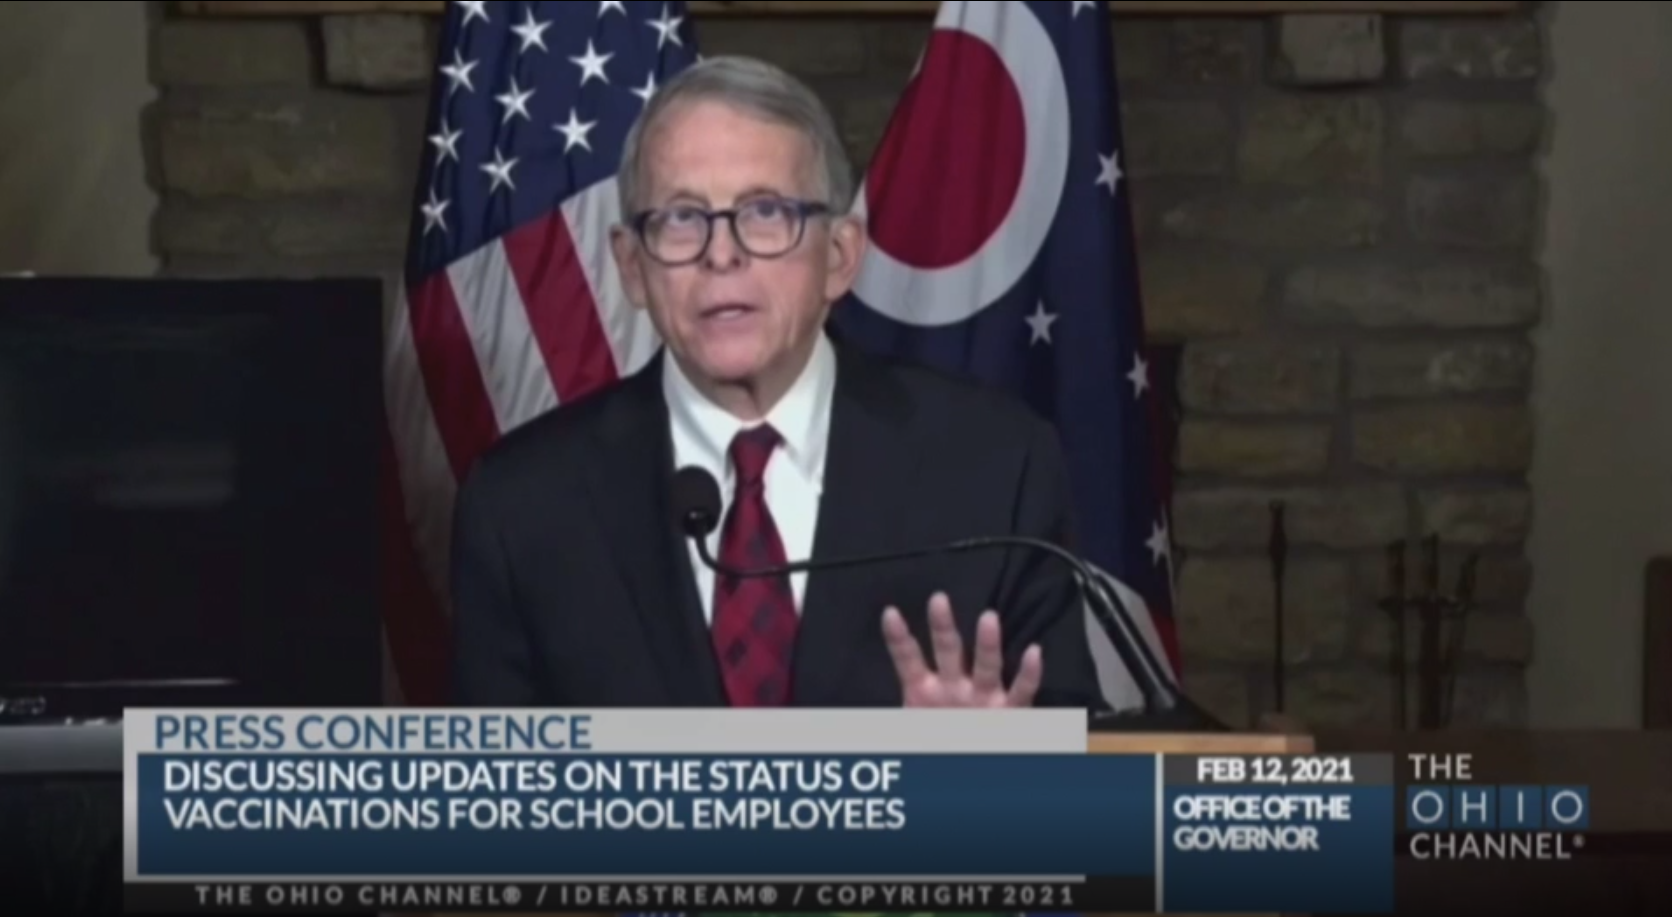 Ohio Gov. Mike DeWine speaks during a news conference in Columbus, Ohio, on February 12.